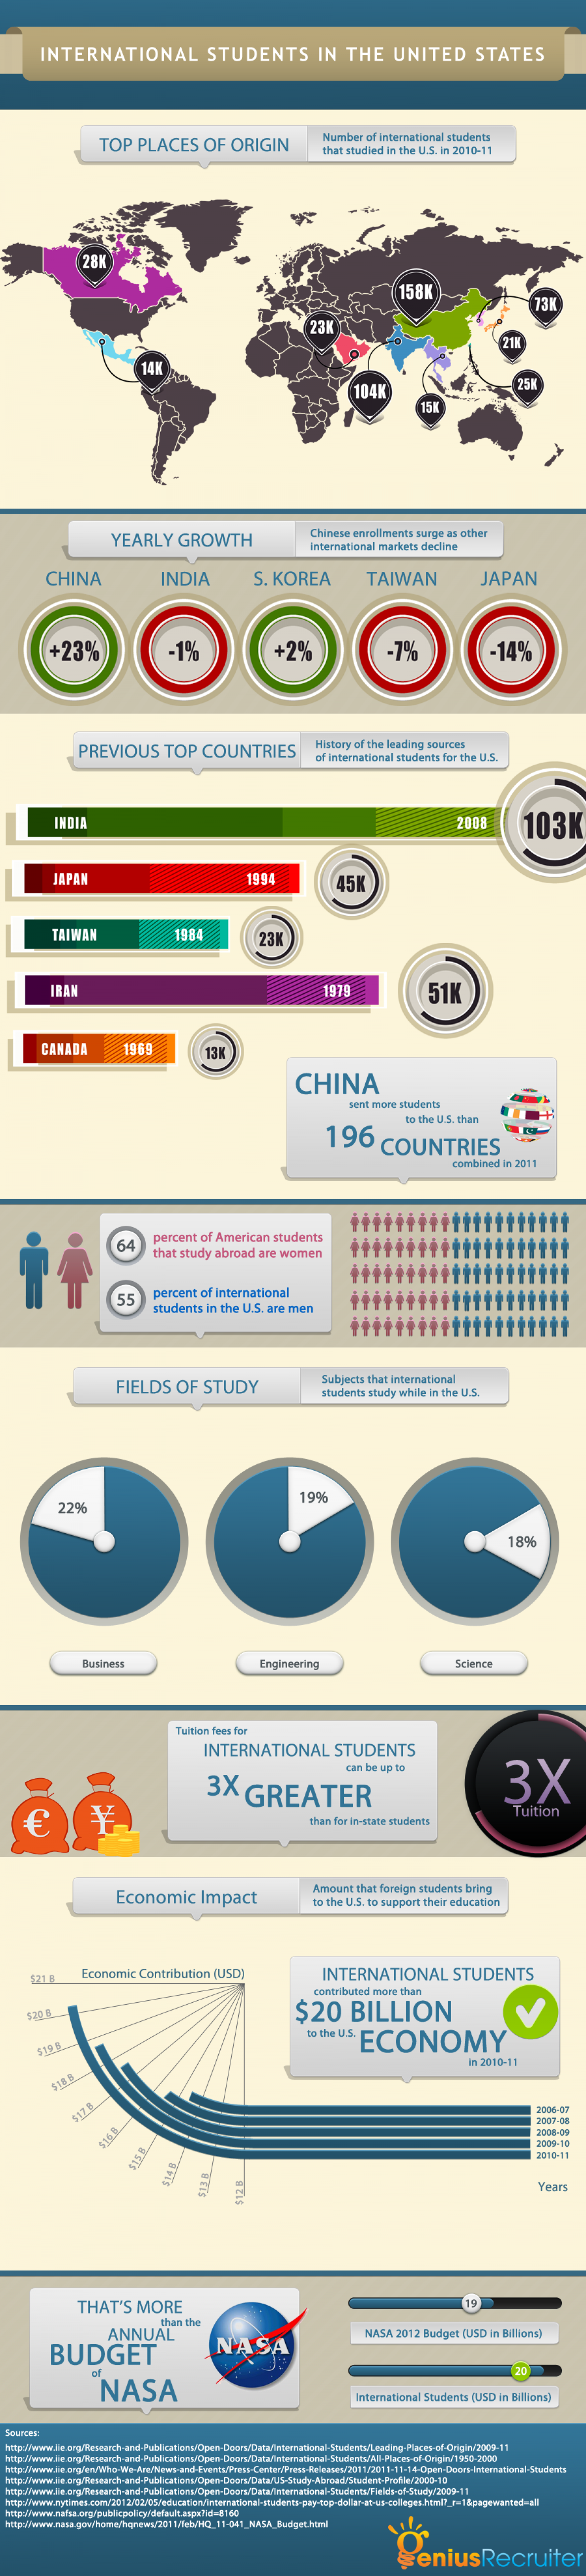 International Students in the U.S. Infographic